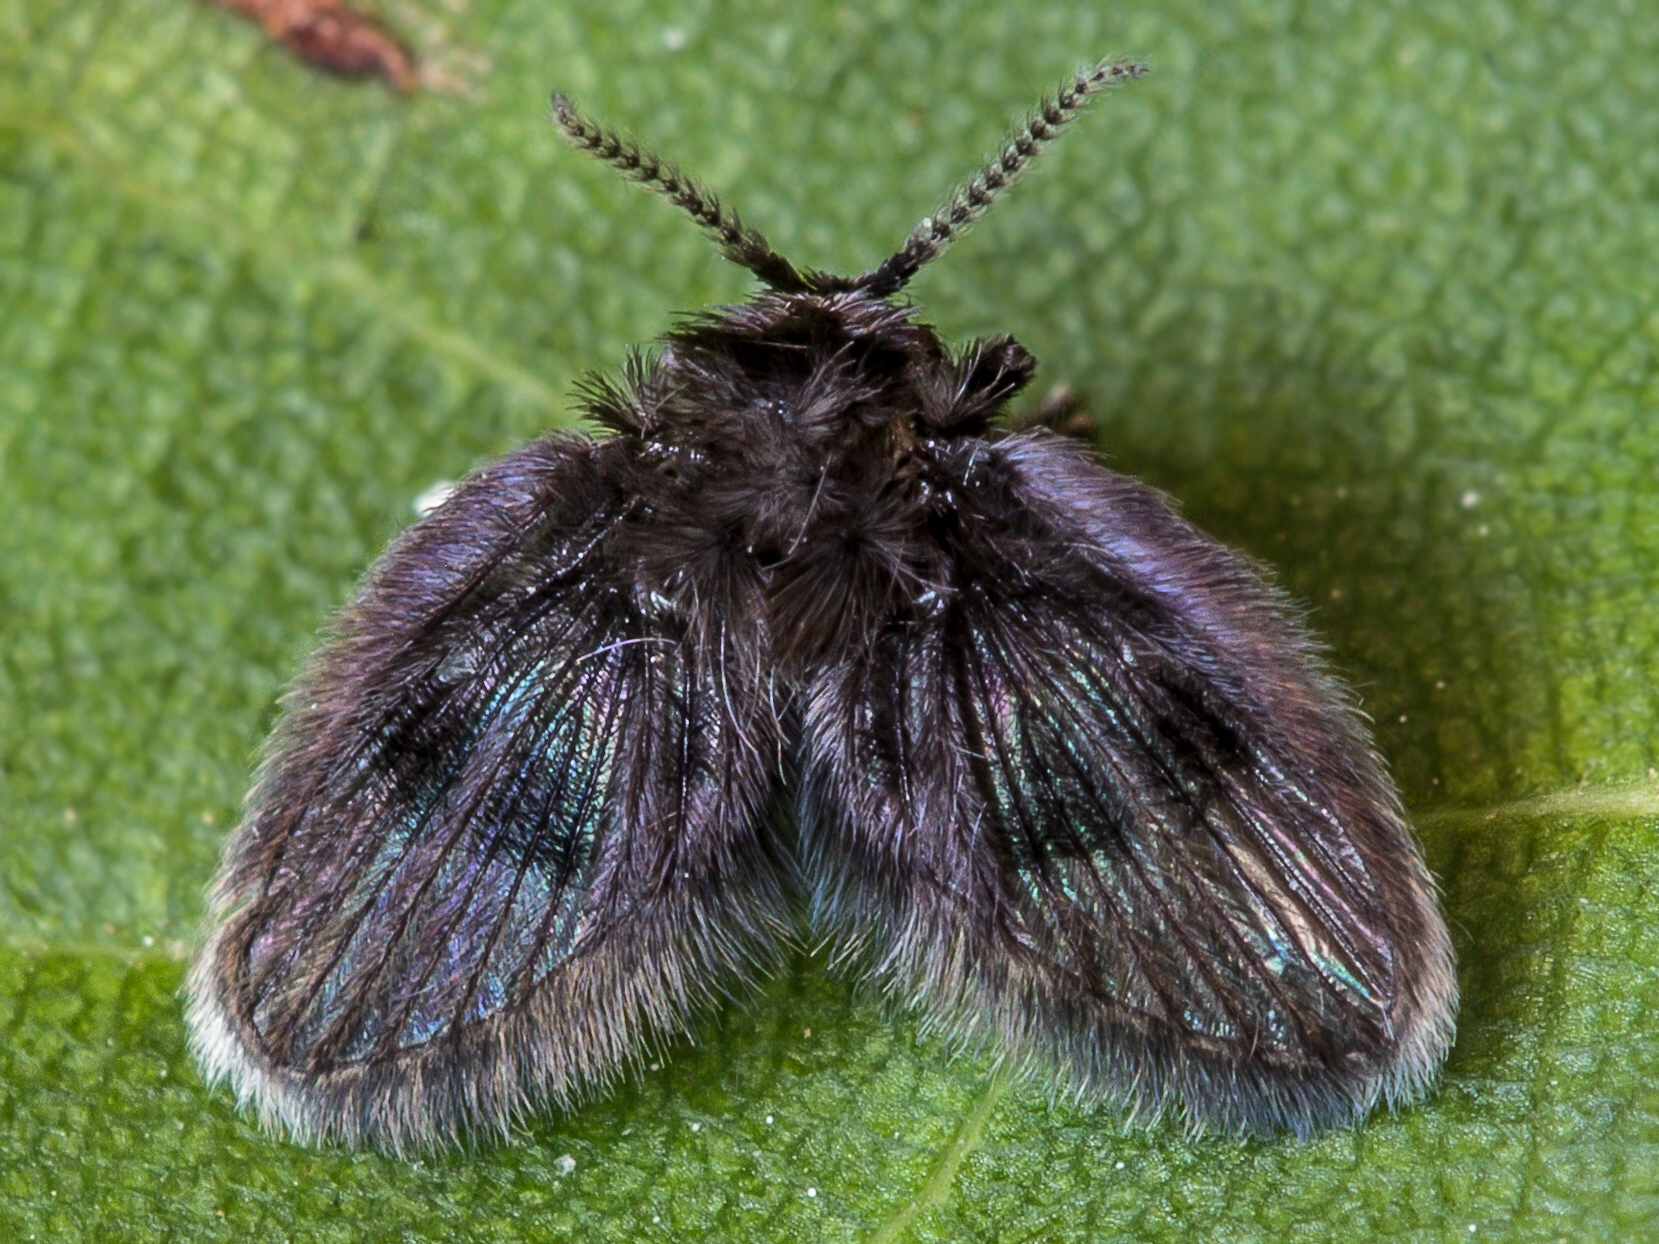 Undetermined representative of the Psychodidae family (photo by: Rudolf Cáfal)